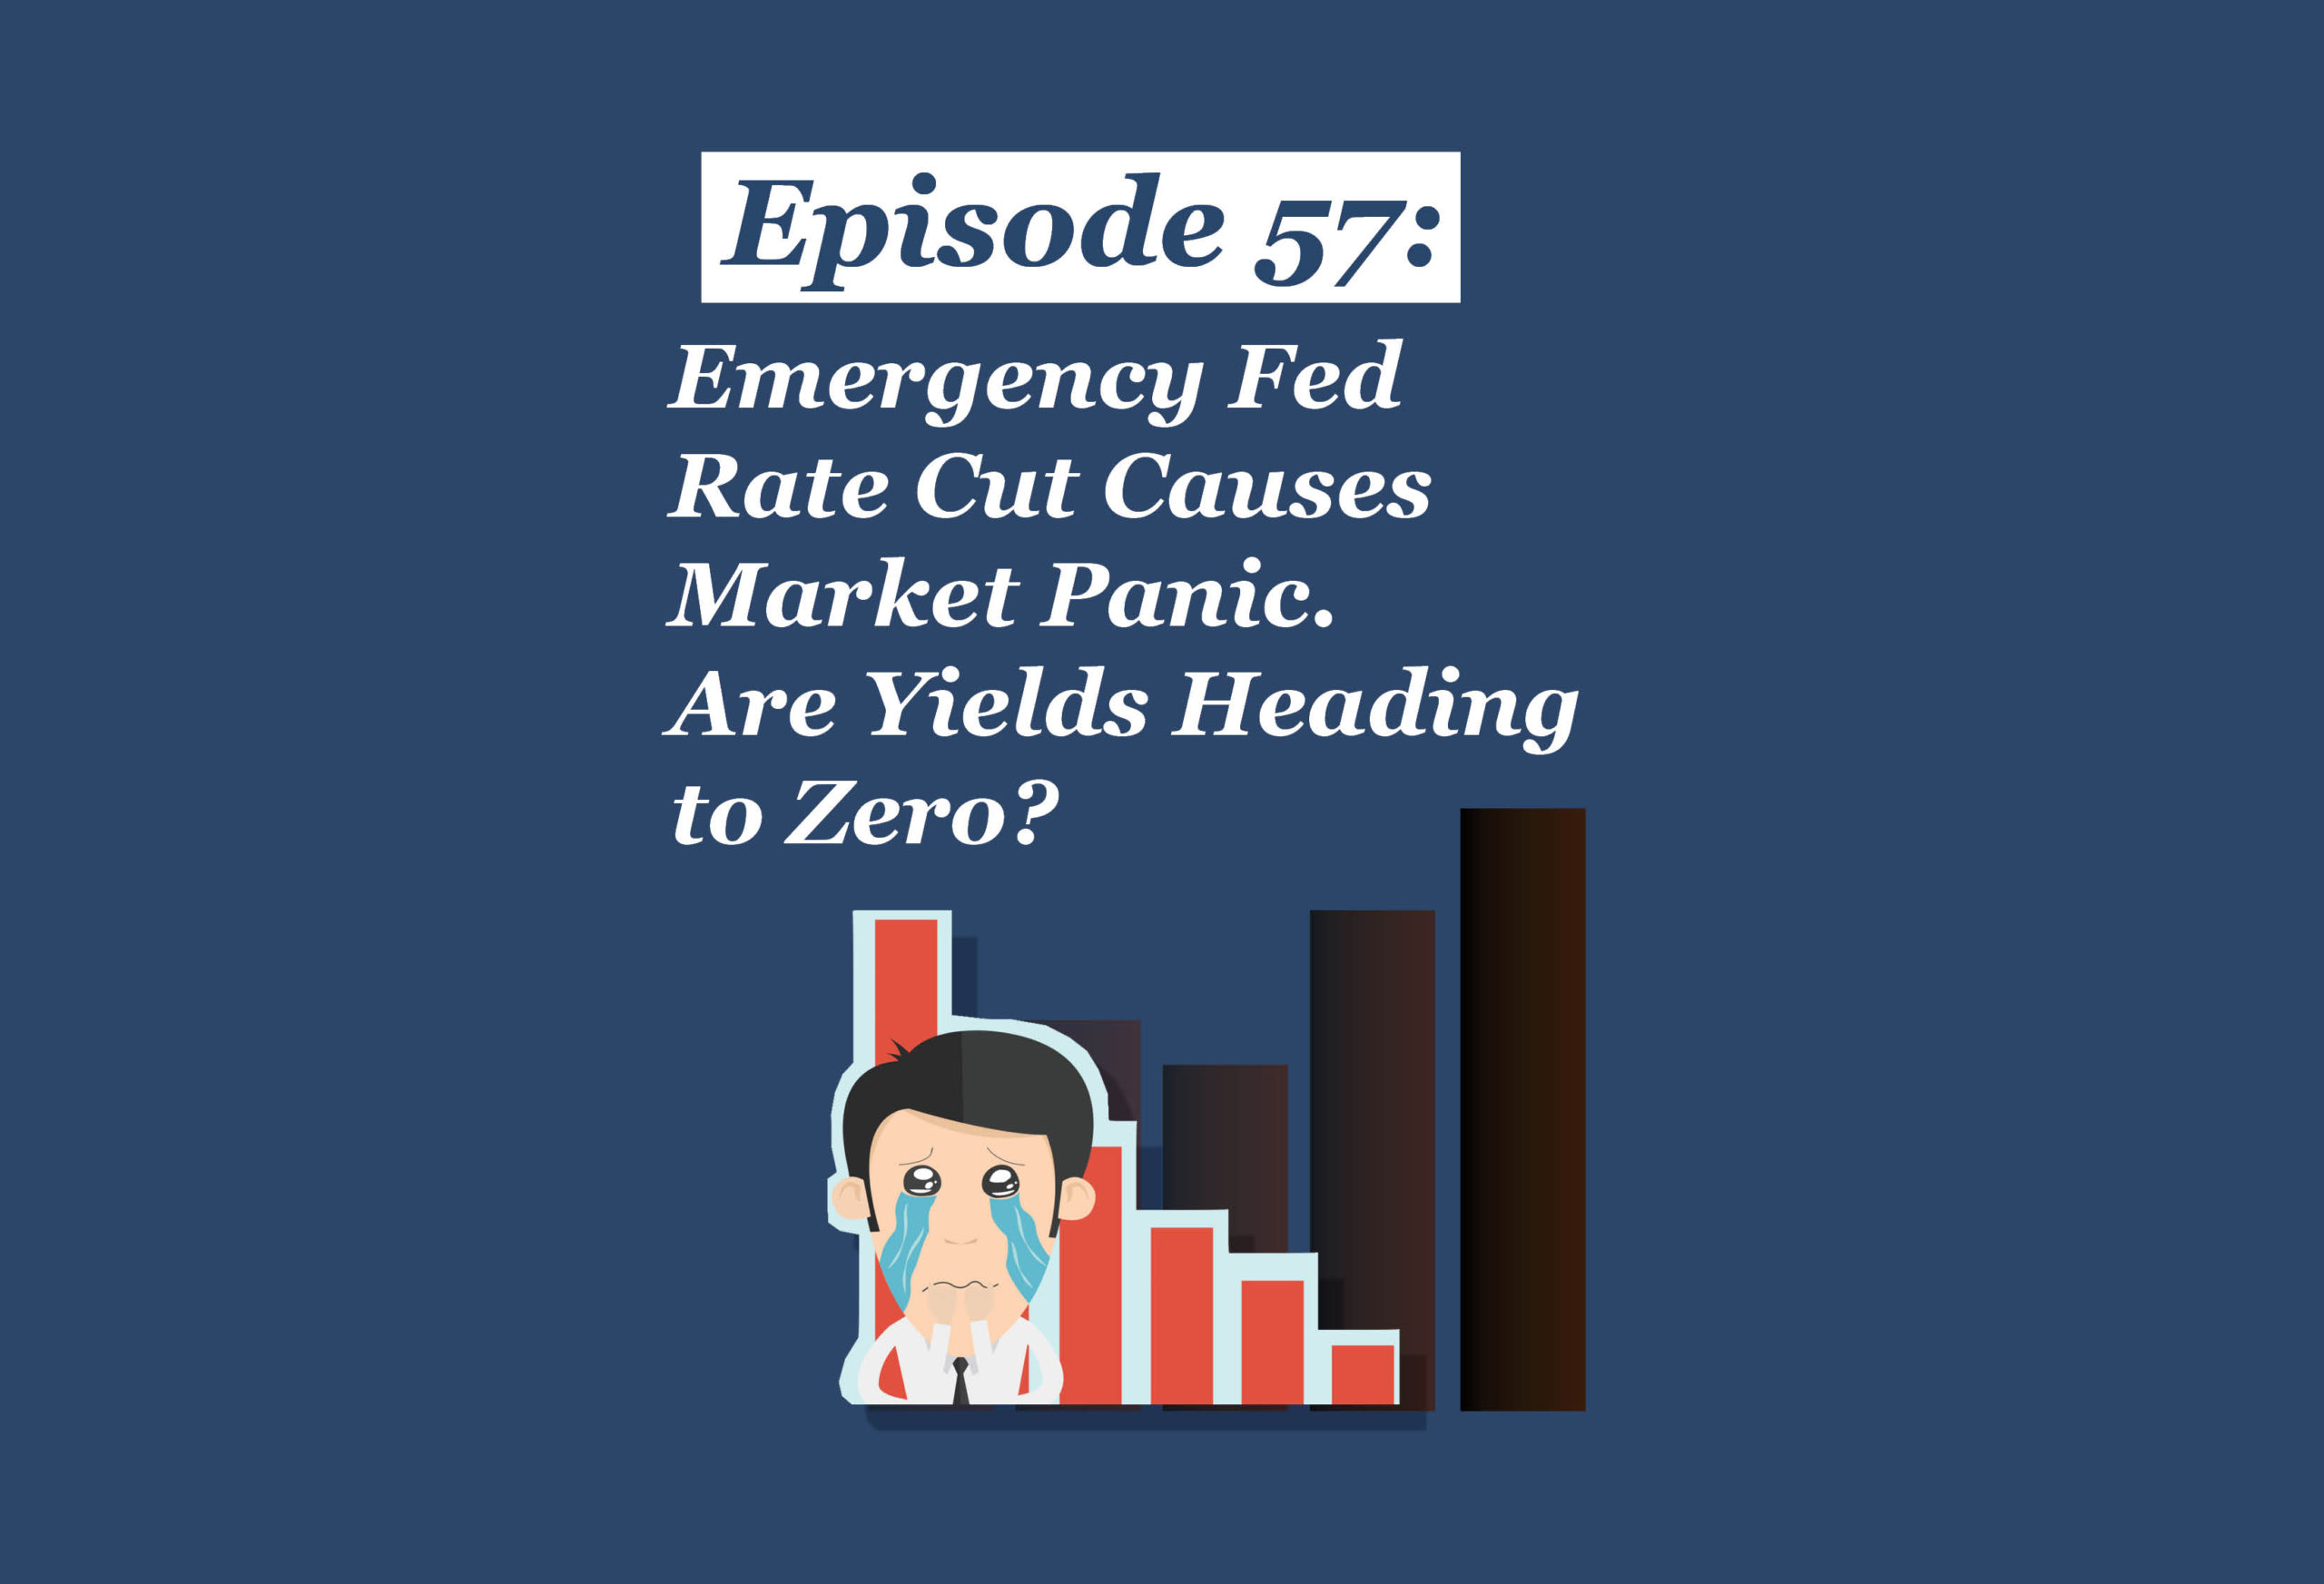 Absolute Return Podcast #57: Emergency Fed Rate Cut Causes Market Panic. Are Yields Heading to Zero?